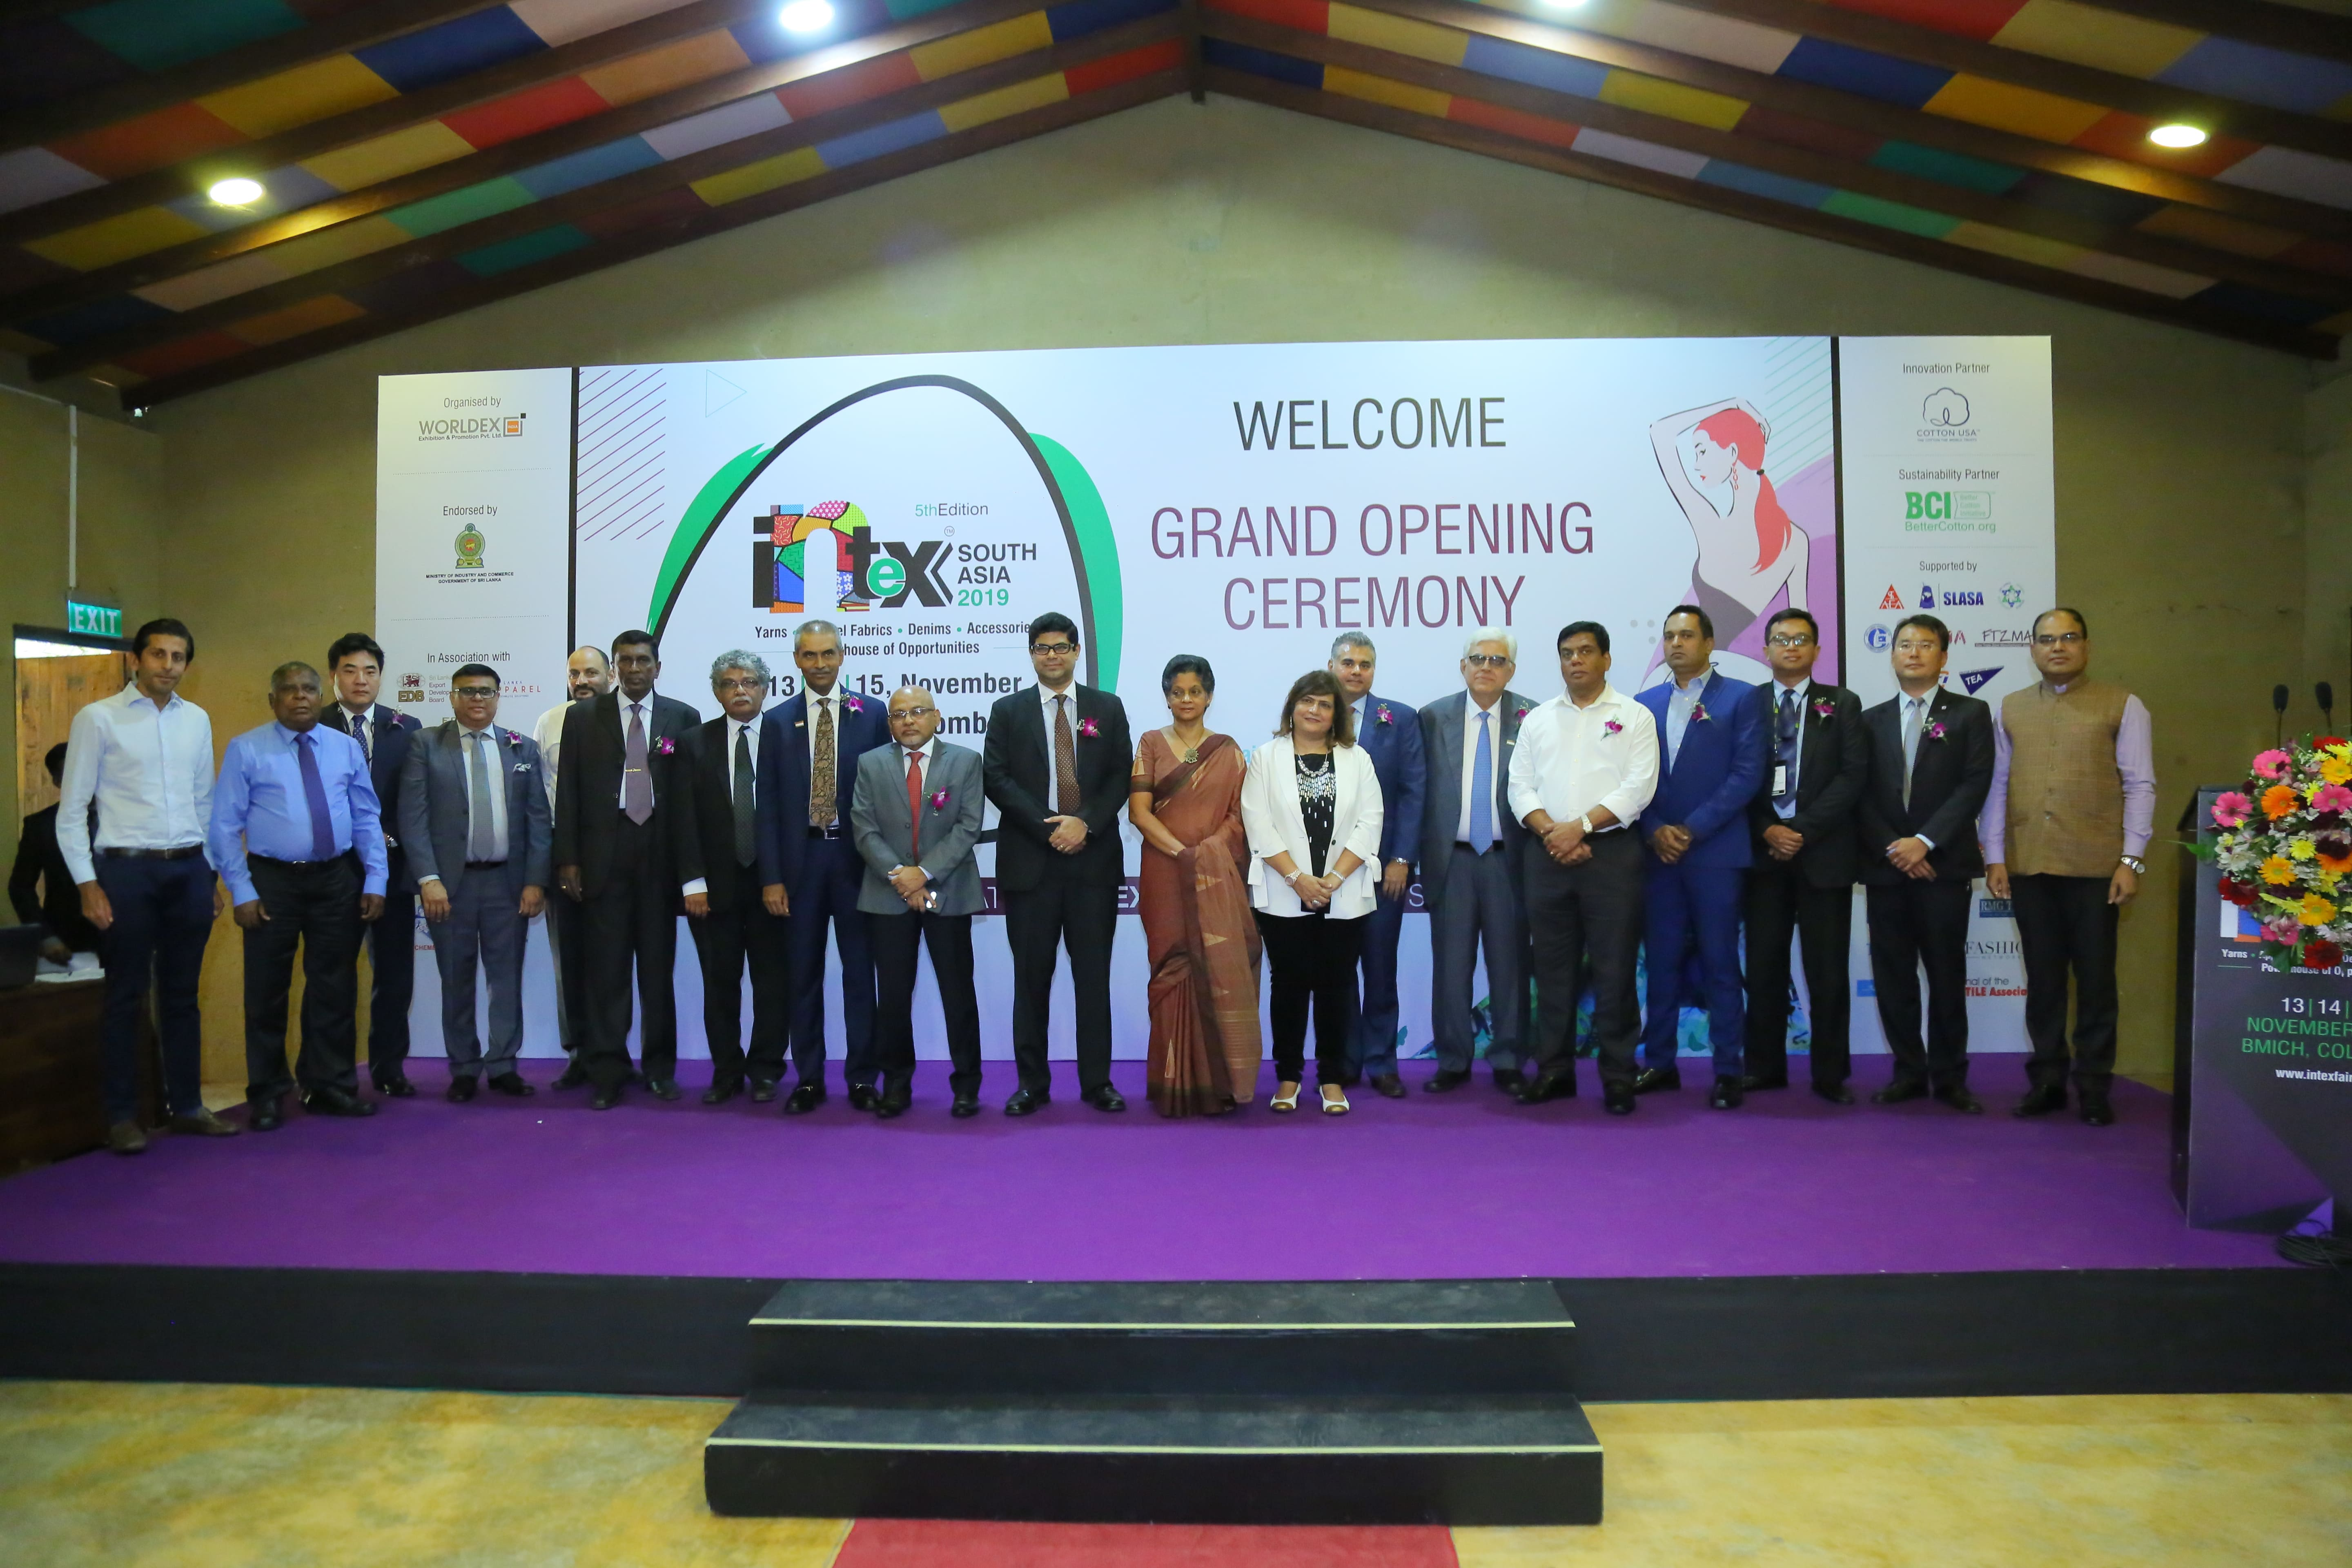 TEXPROCIL @ Grand Opening Ceremony of Intex South Asia on 13th November, 2019 at BMICH, Colombo, Sri Lanka